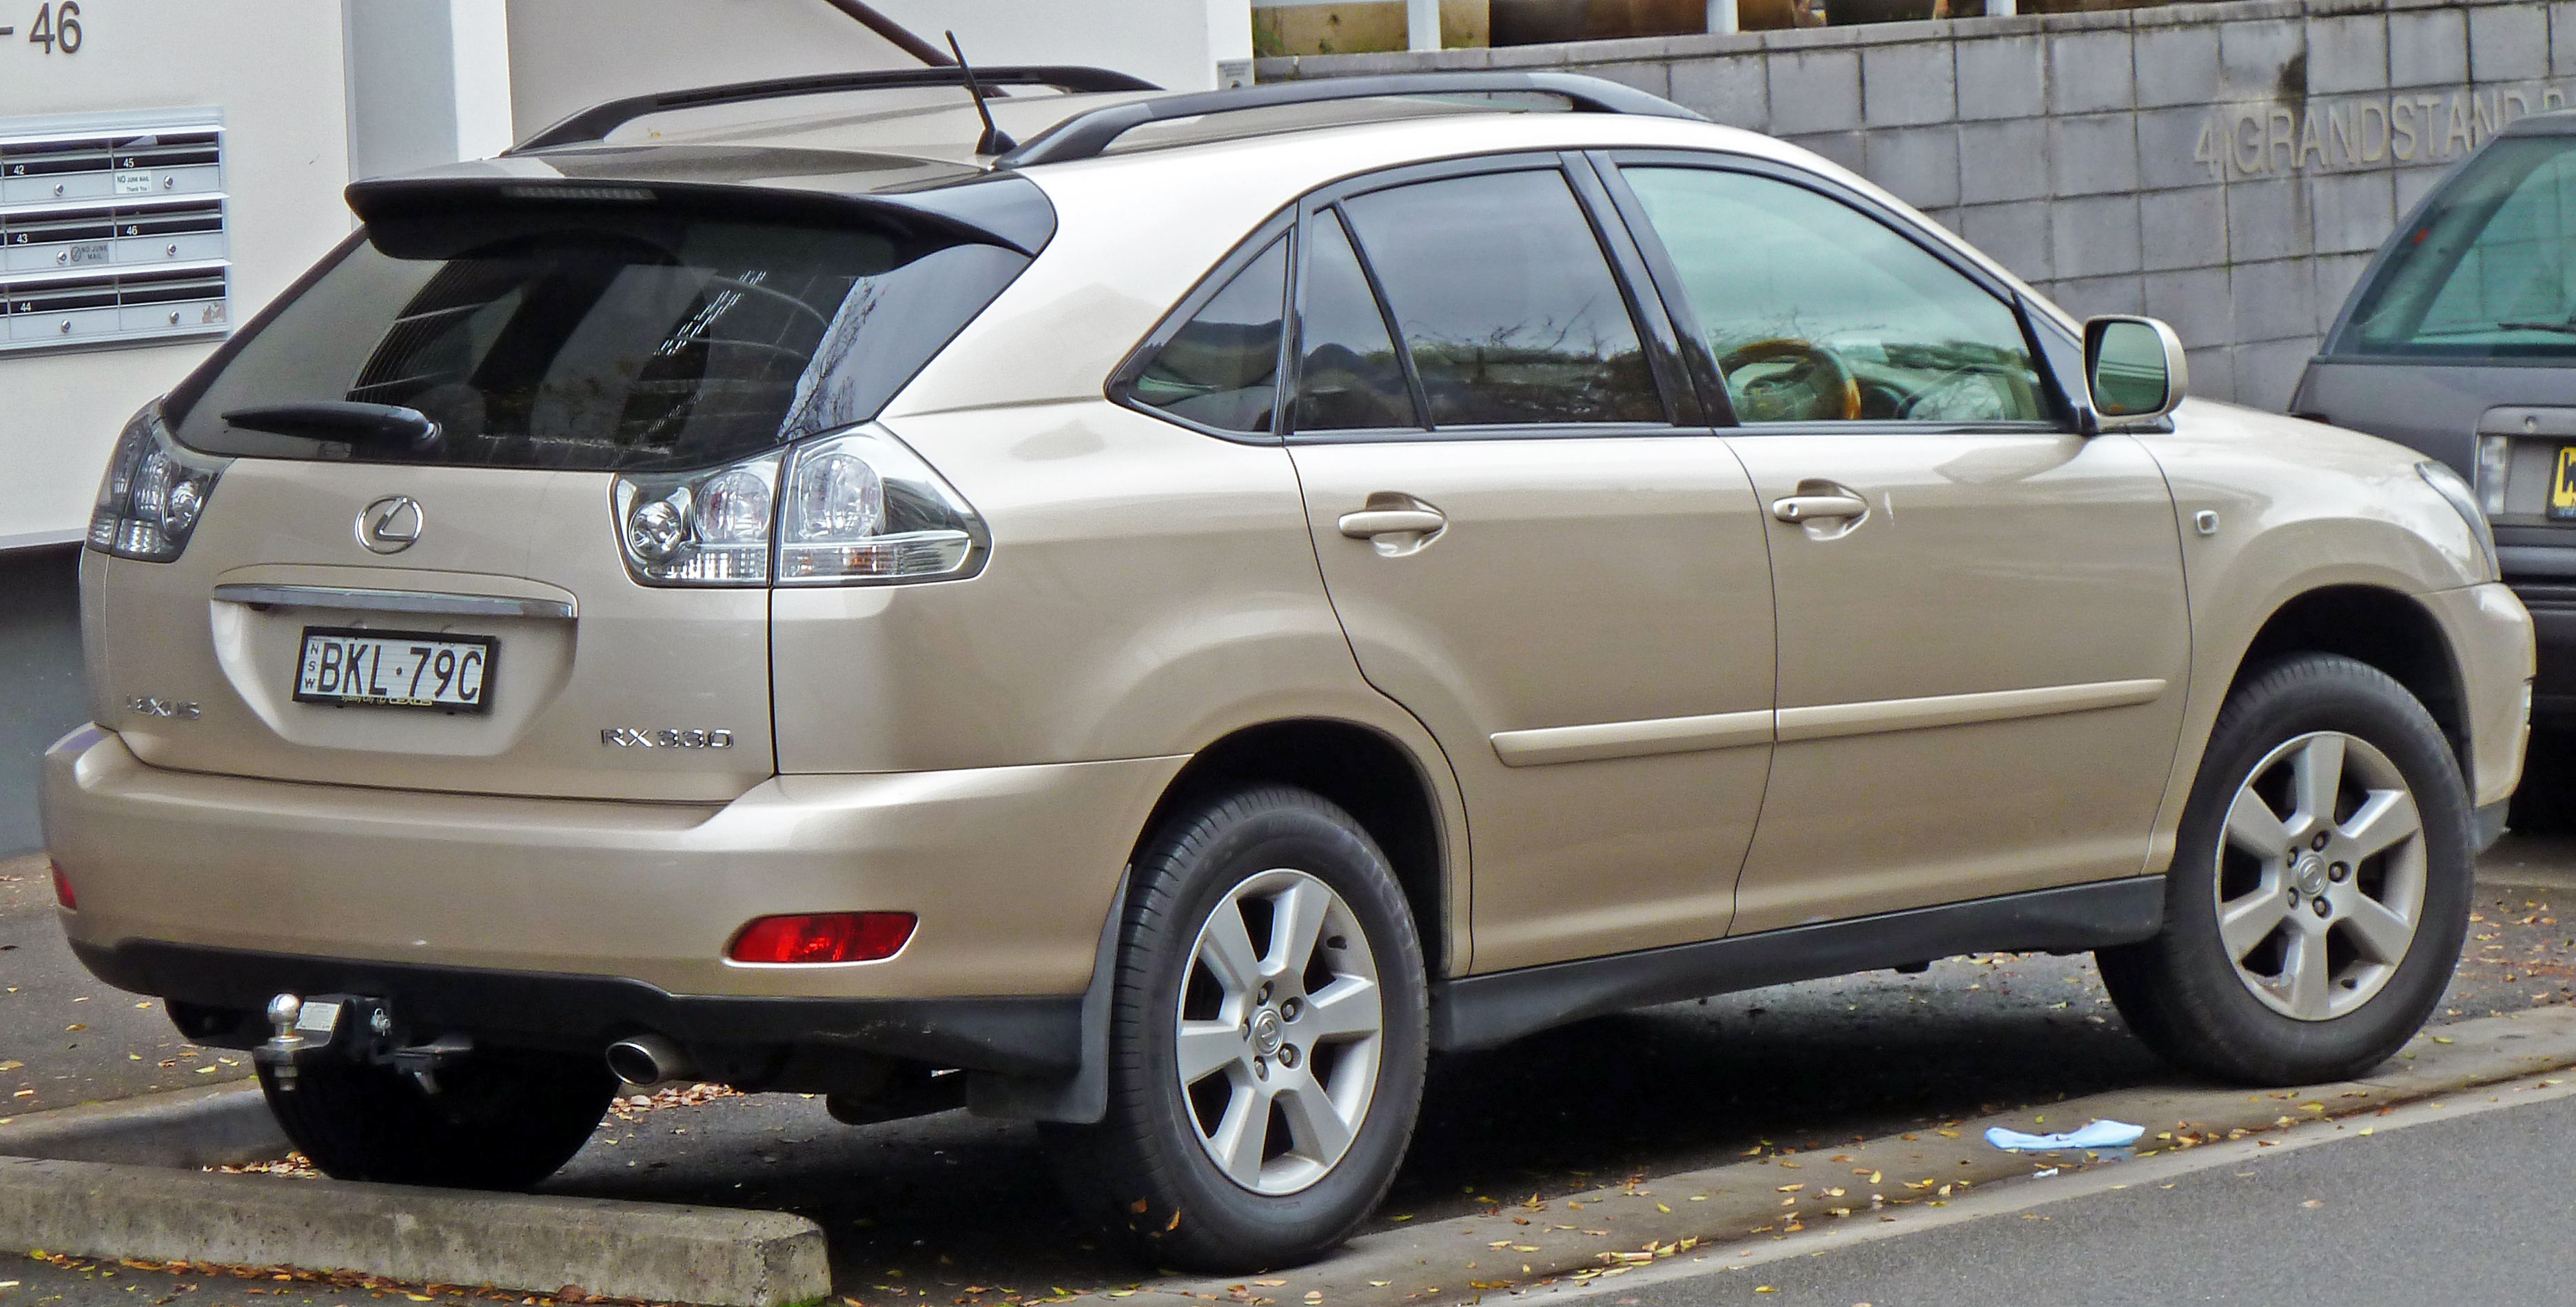 File:2004 Lexus RX 330 (MCU38R) Sports Luxury Wagon (2010 07